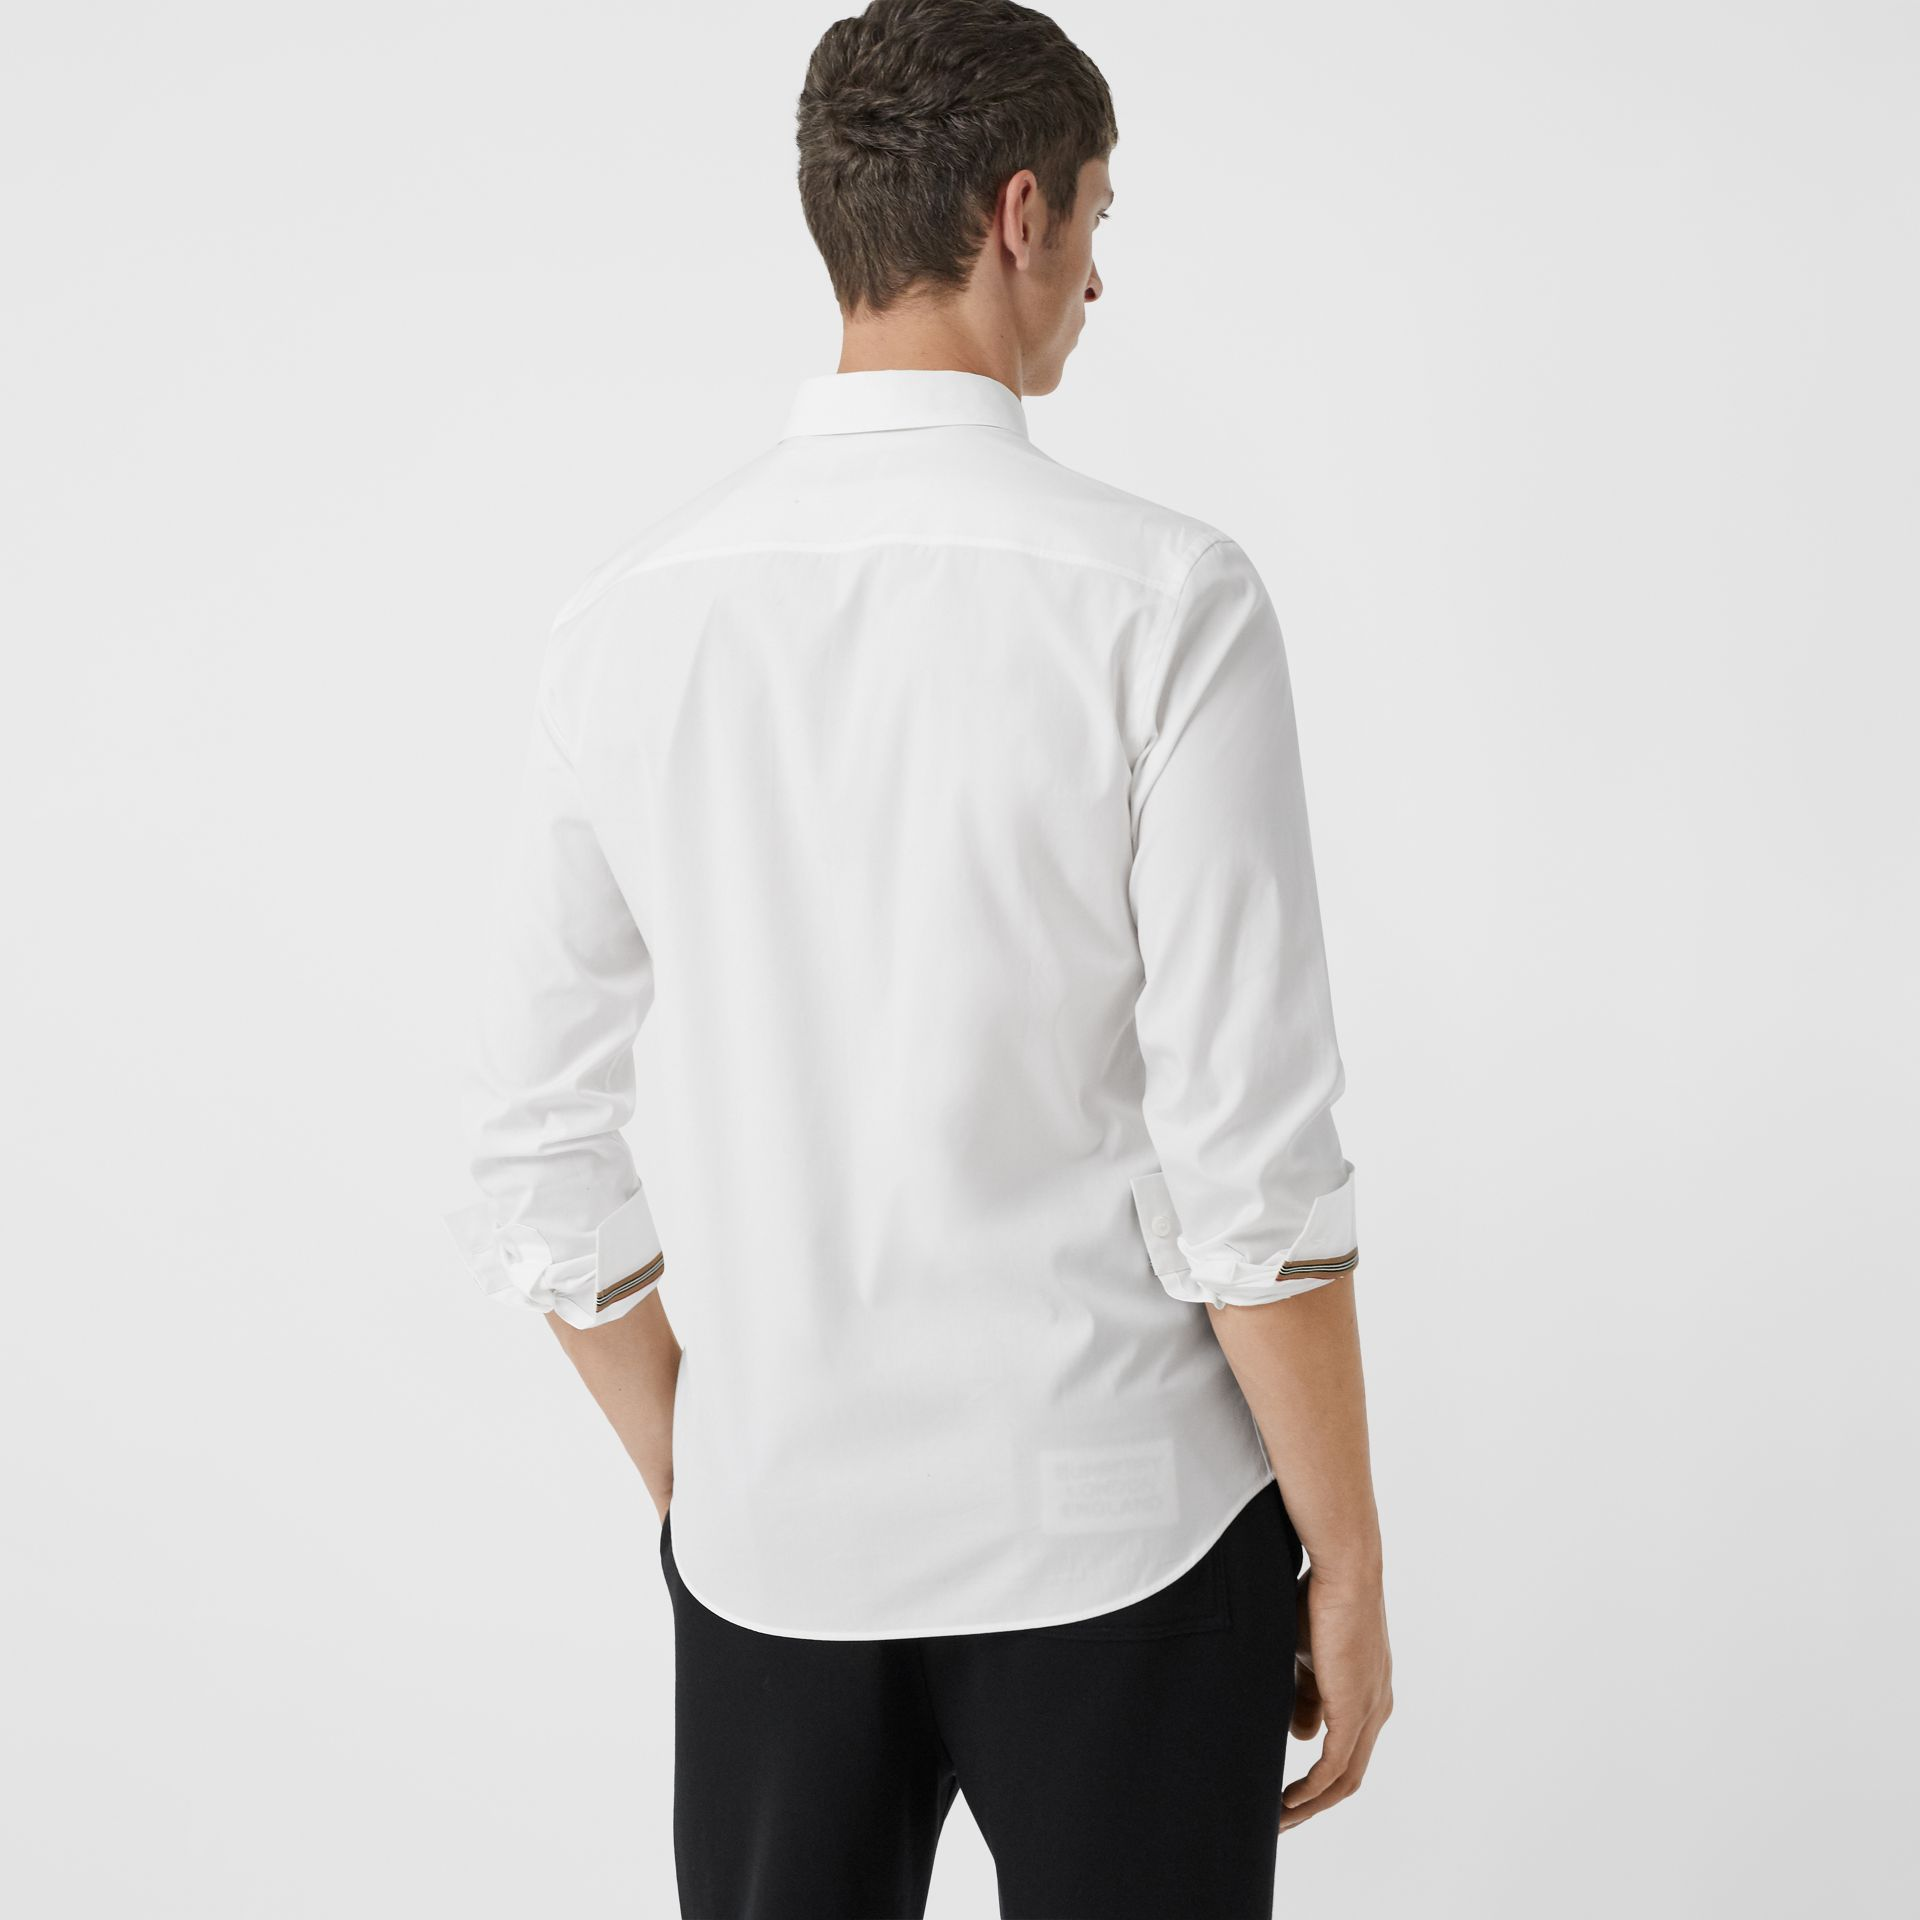 Monogram Motif Stretch Cotton Poplin Shirt in White - Men | Burberry - gallery image 2